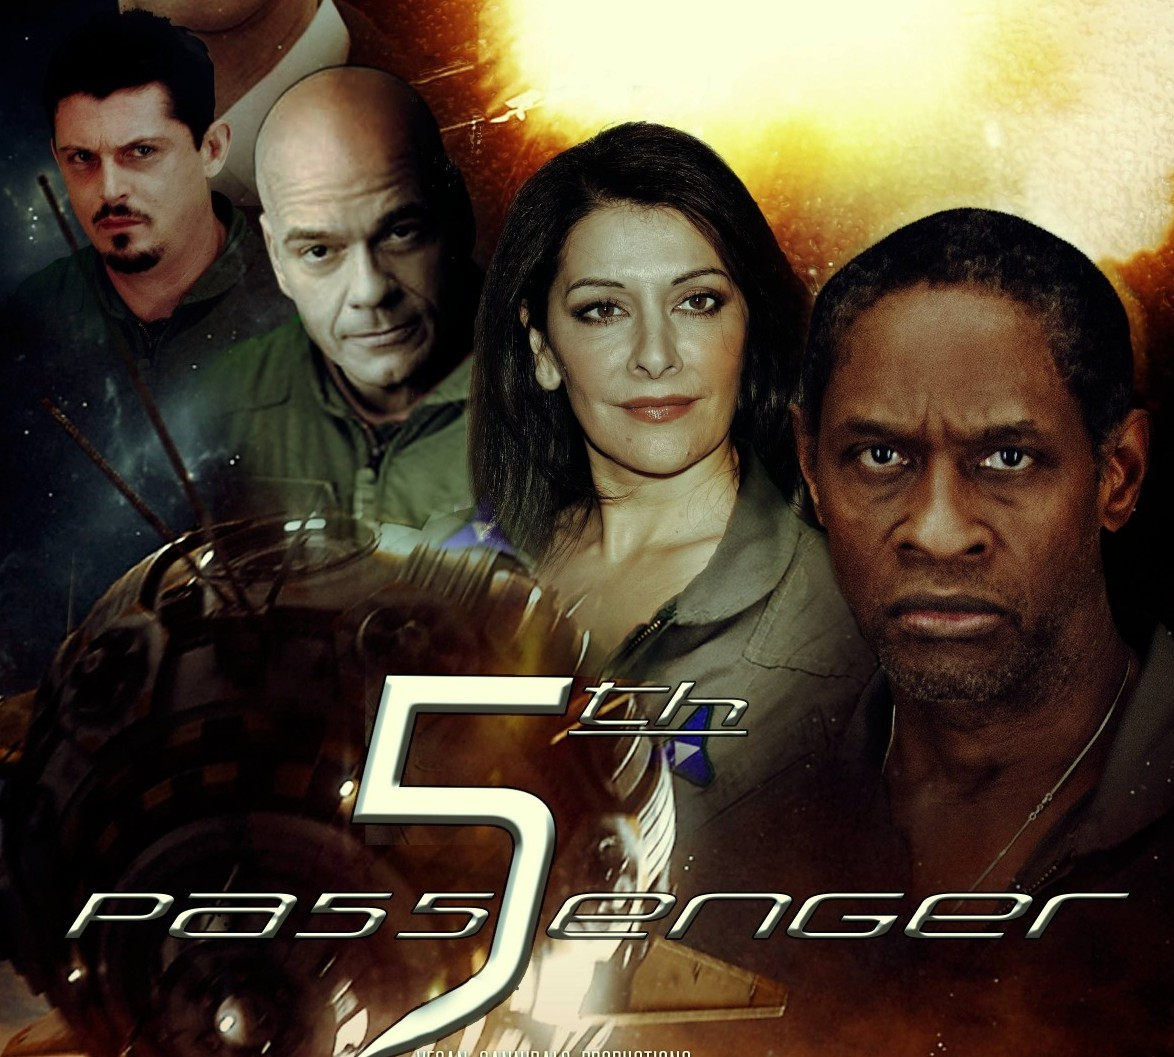 Smarter Scifi: The 5th Passenger